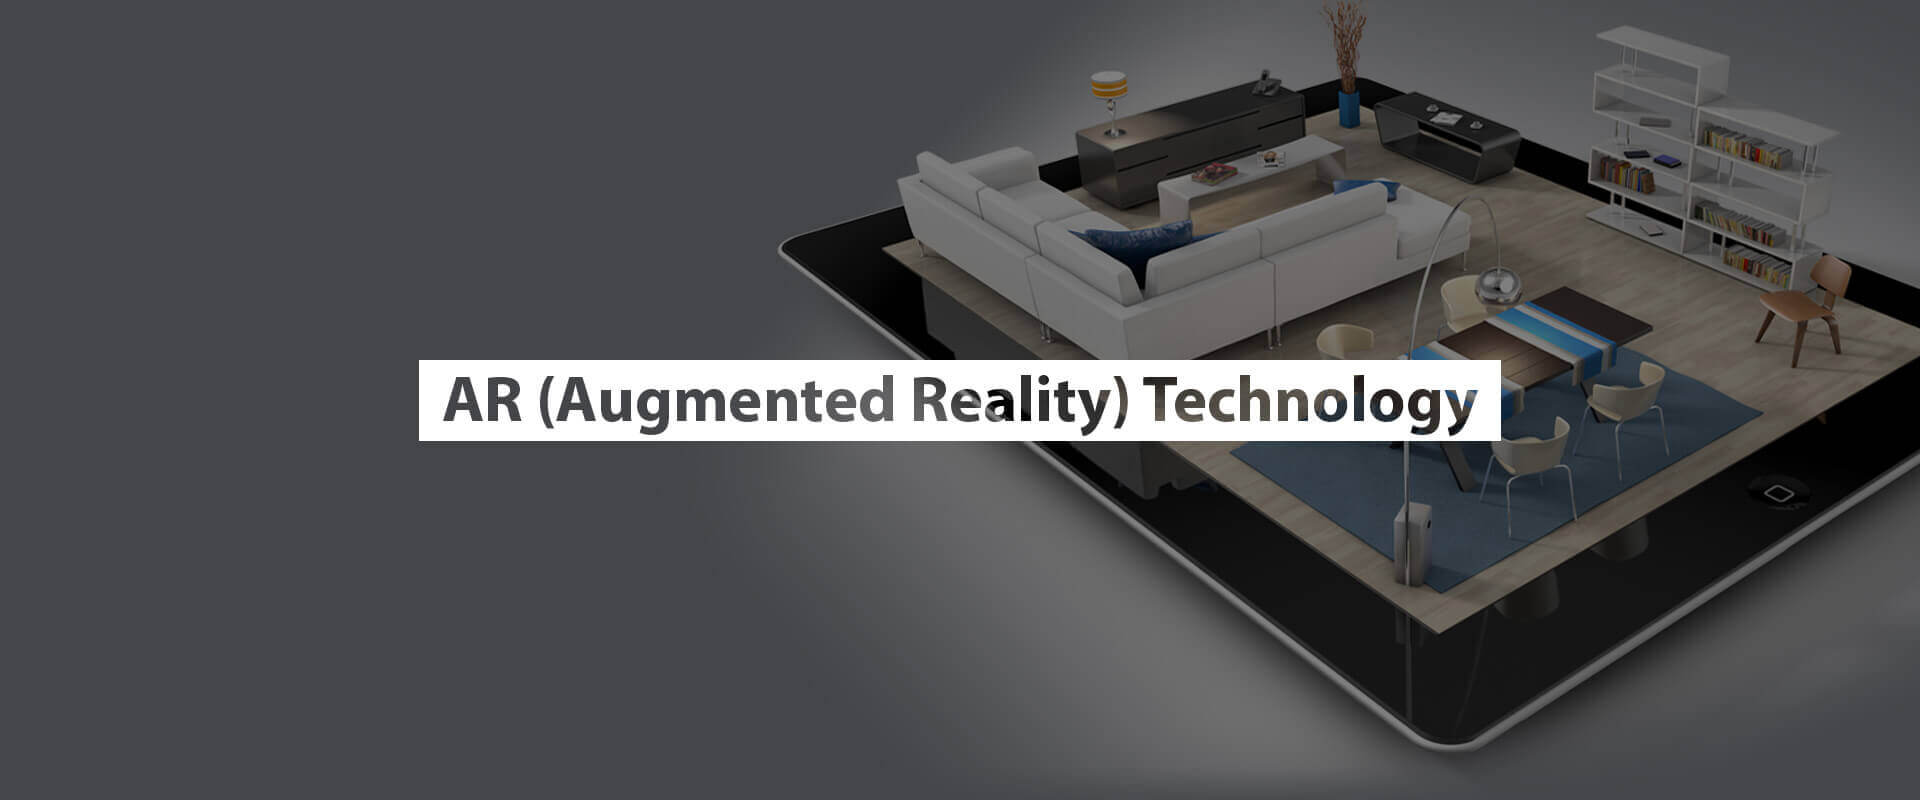 AR (Augmented Reality)